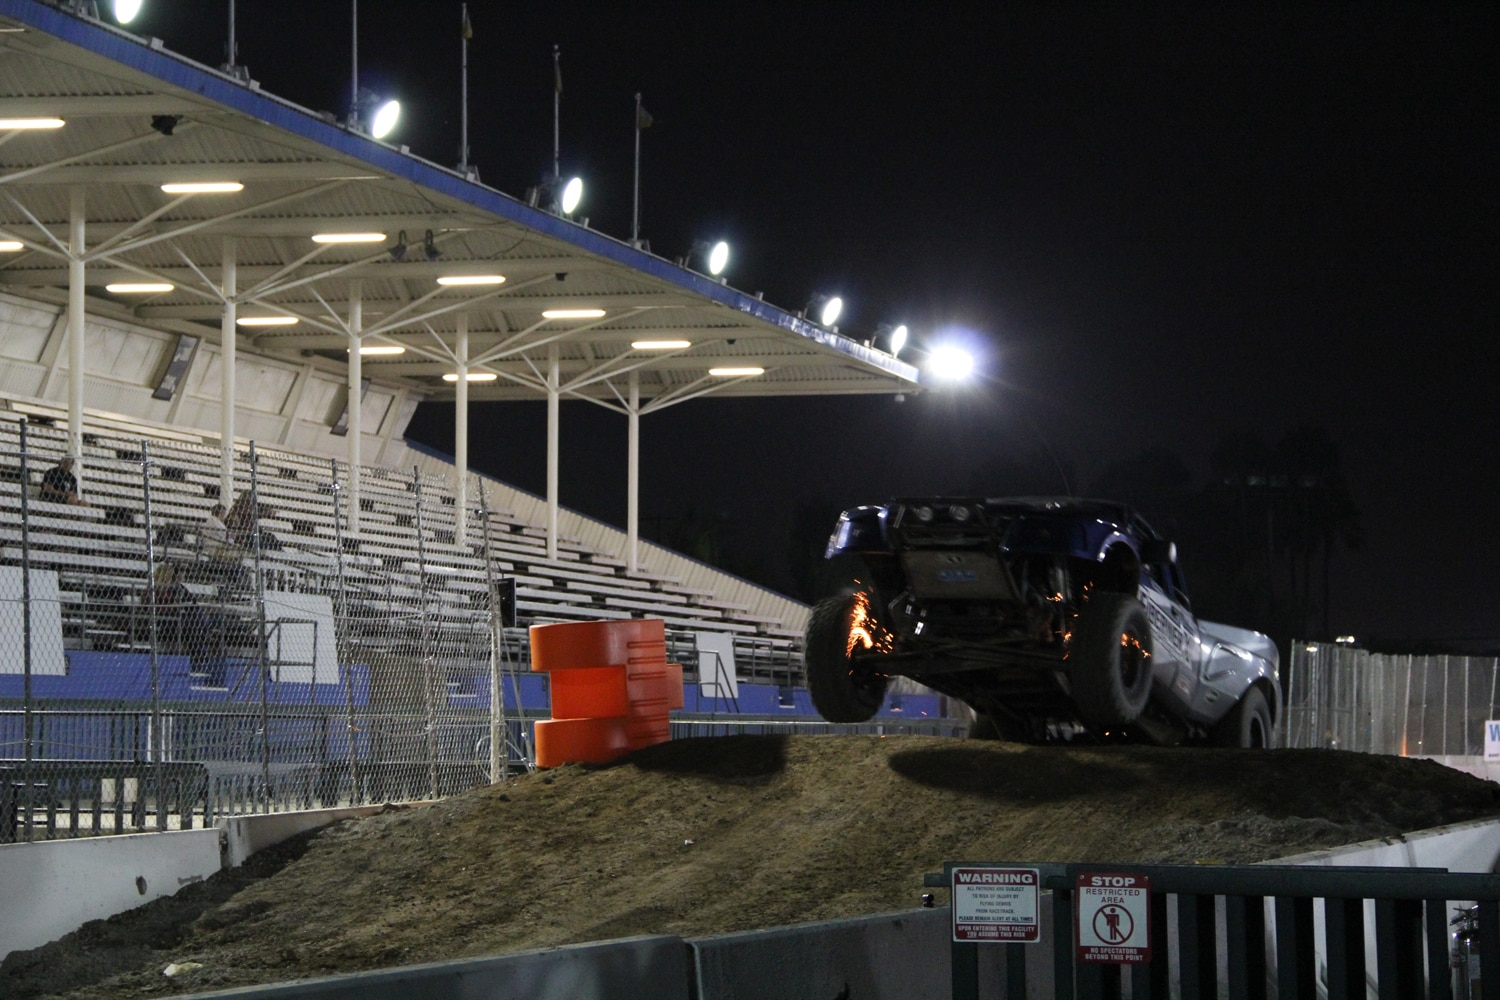 Stadium Super Trucks at SSSS  6  sparks from rotors.JPG